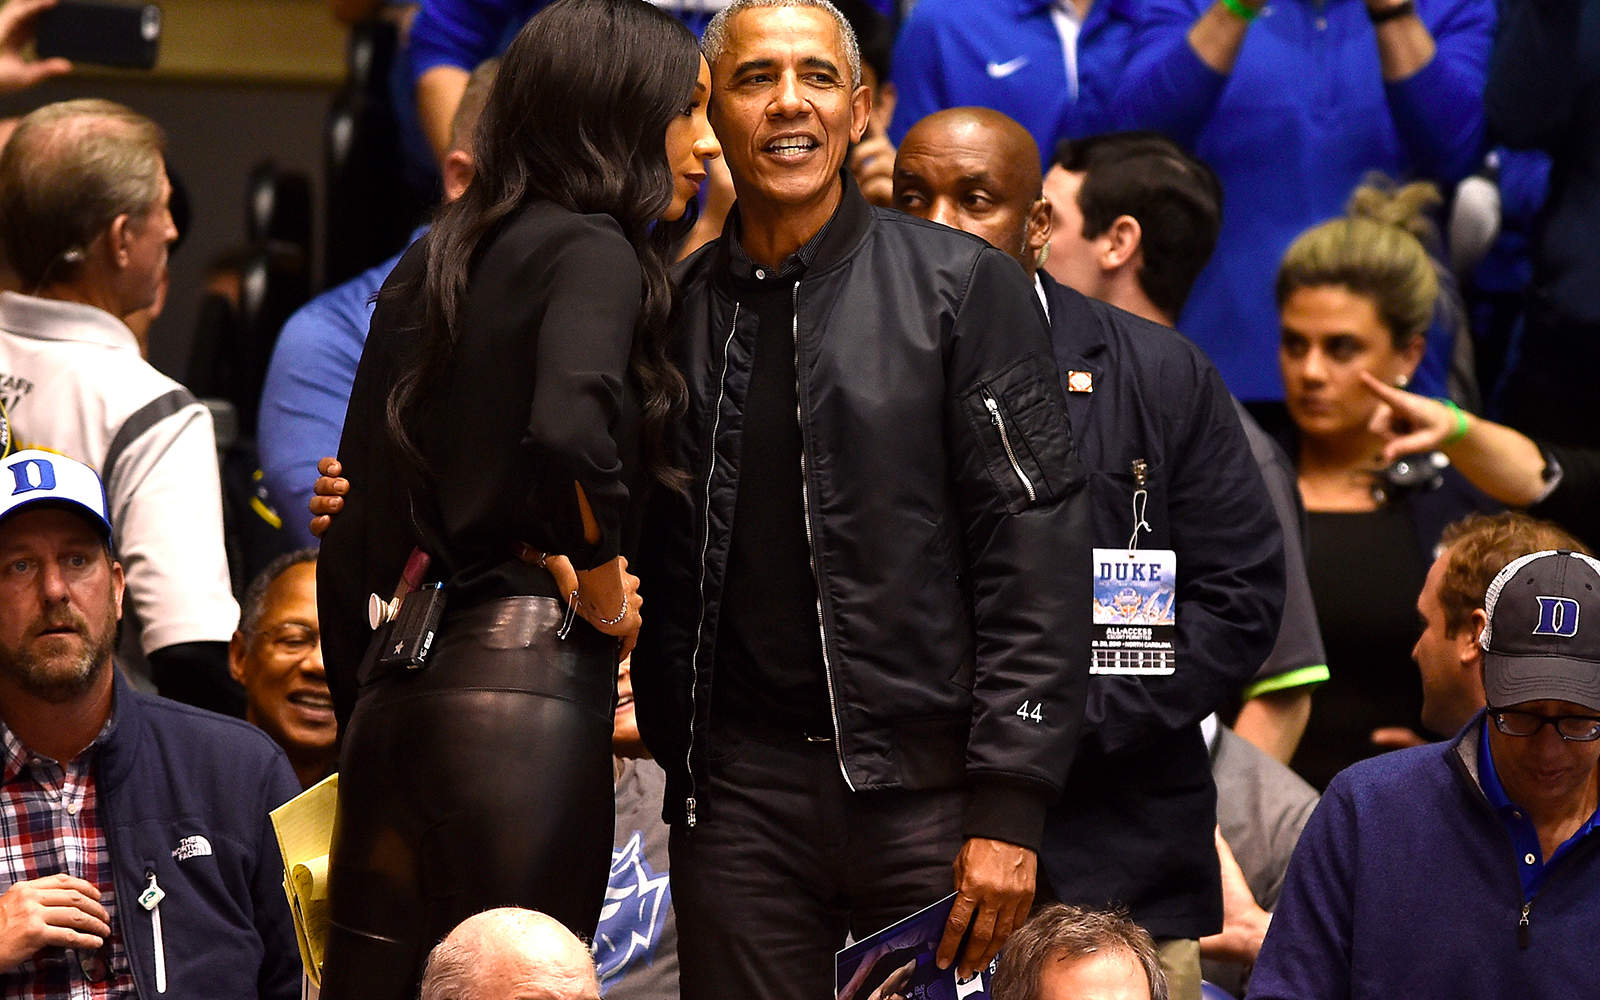 The $95 Sneakers Obama Wore Have a Huge Cult Following — Here's Where to Buy Them